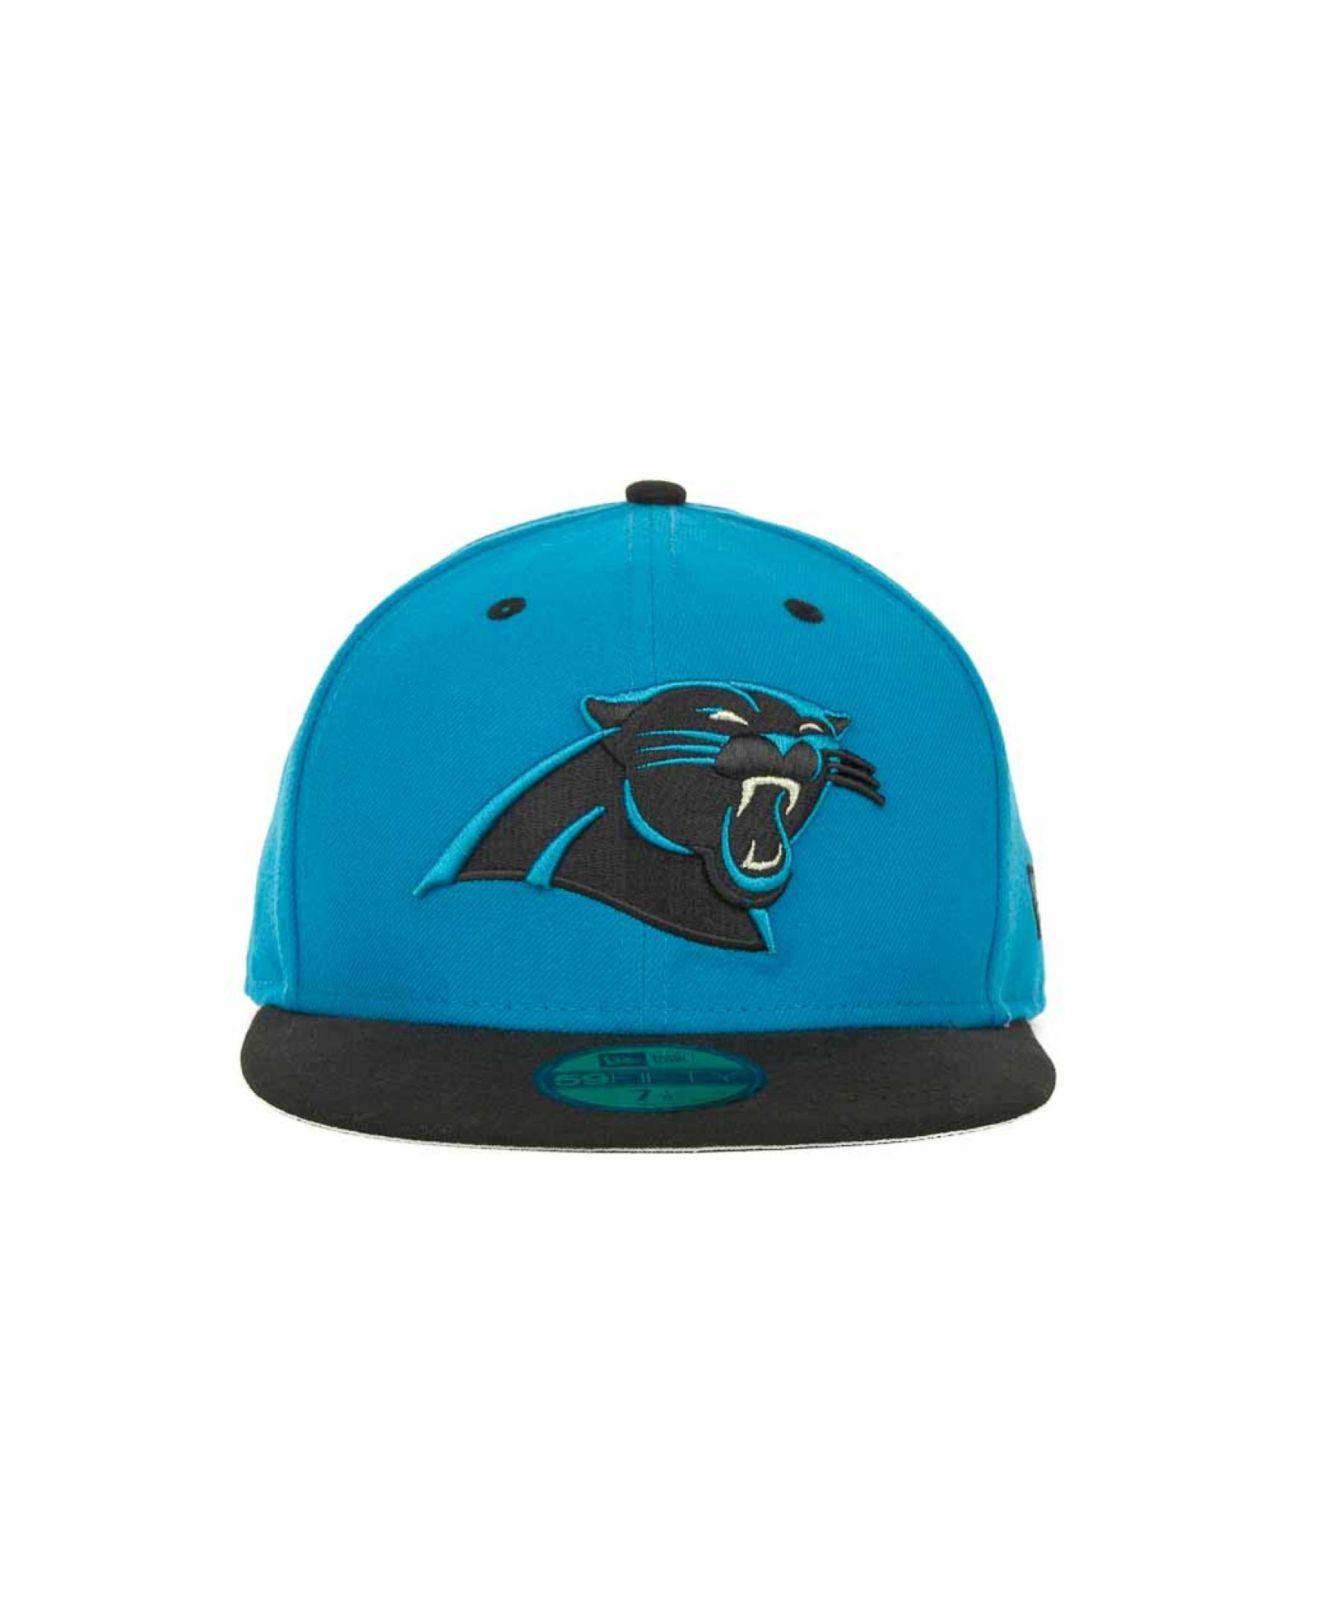 Lyst - KTZ Carolina Panthers 2 Tone 59fifty Fitted Cap in Black for Men b02931fe9